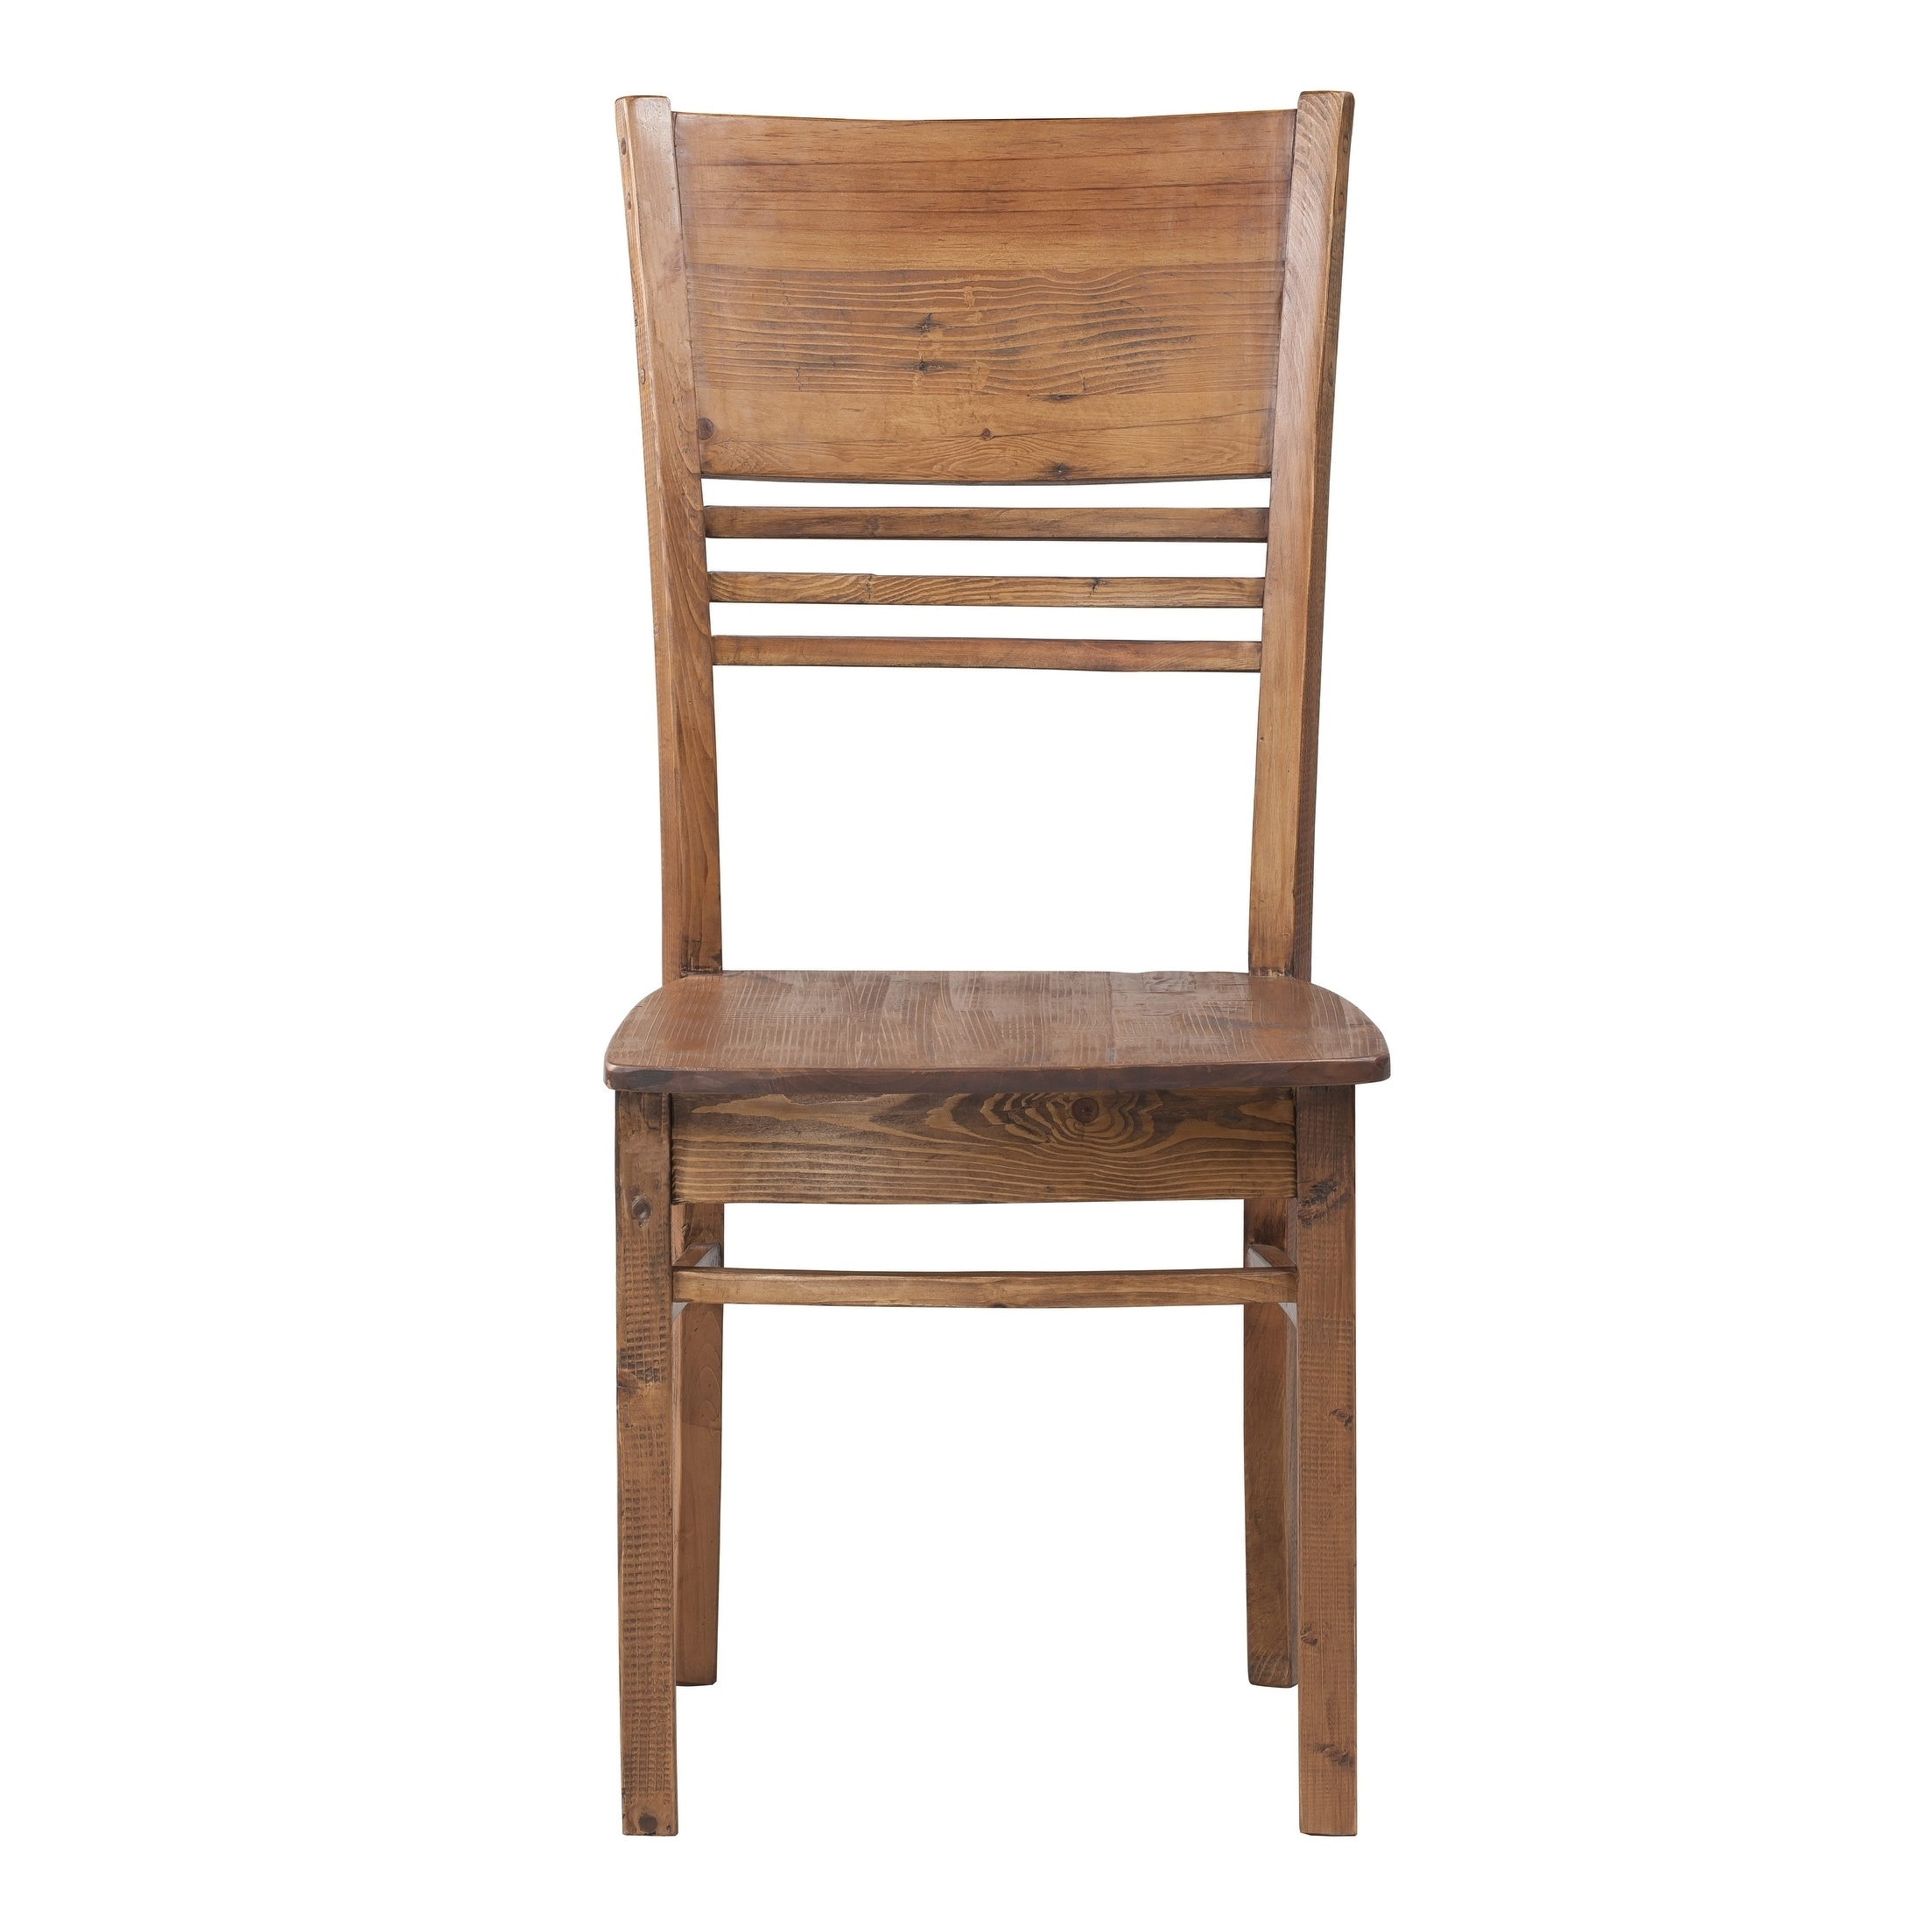 Country Dining Room Chairs Country Rustic Wood Dining Room Chair